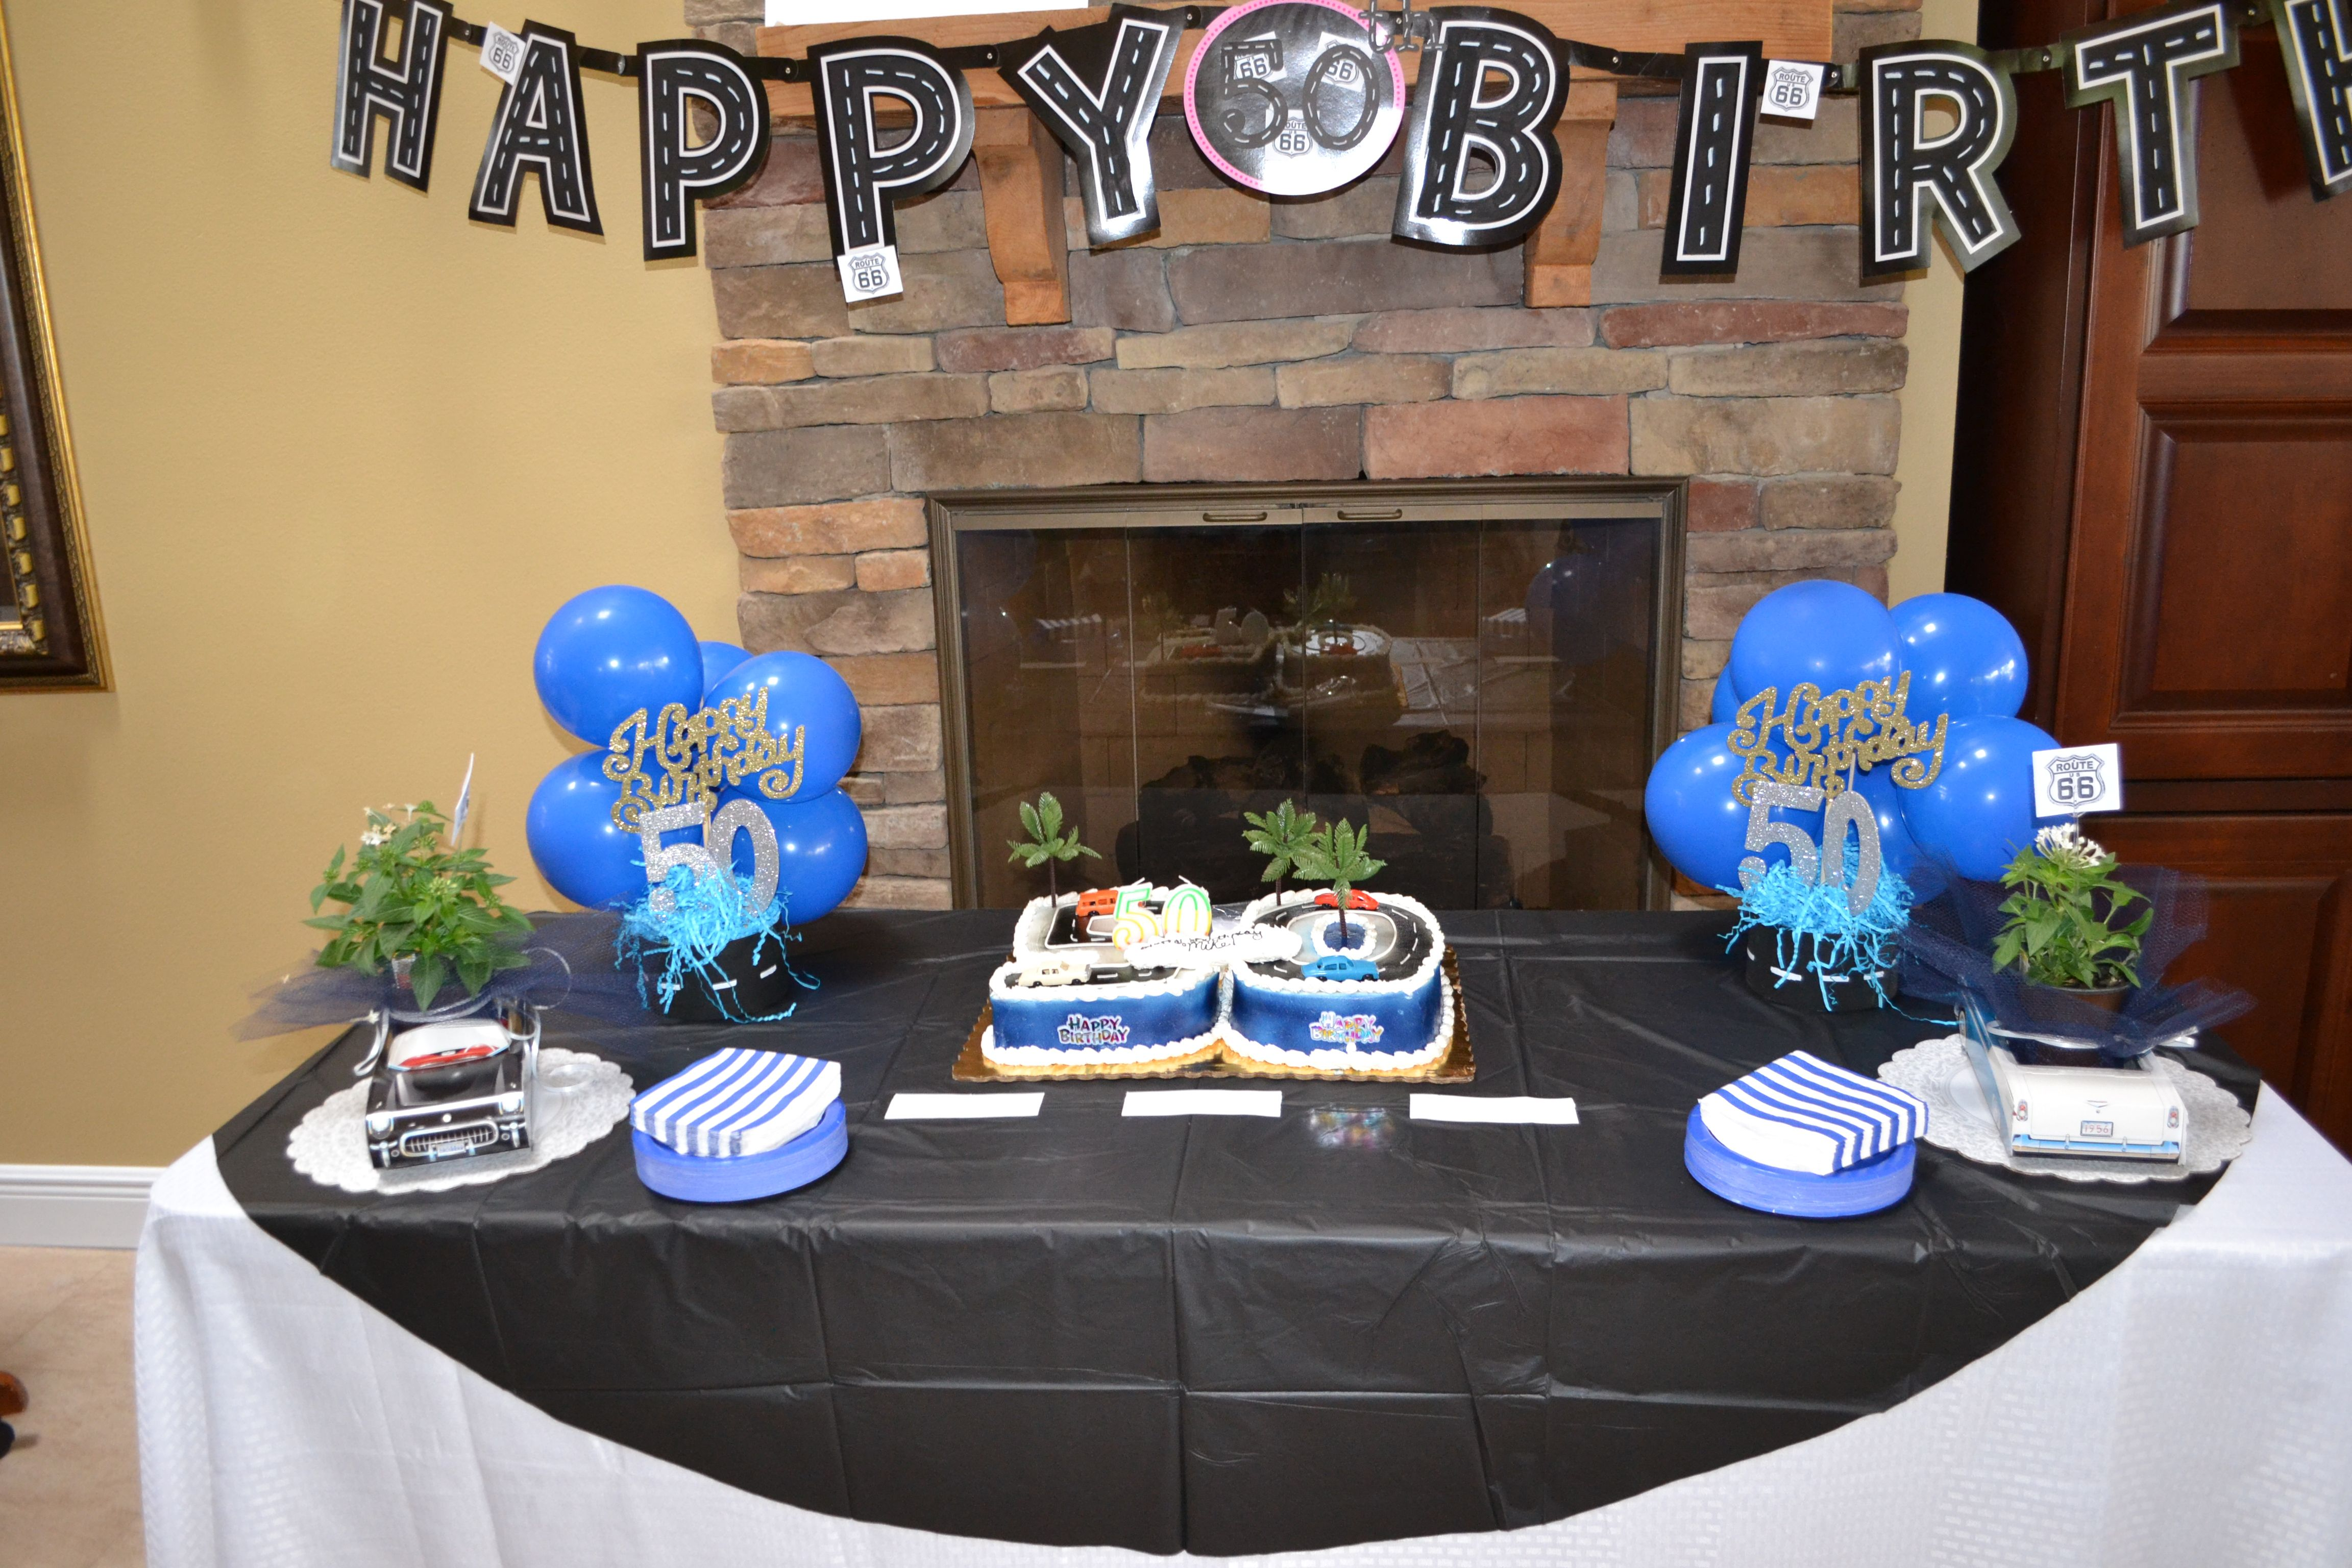 Cake Table Decor For A 50th Birthday Classic Car Birthday Party